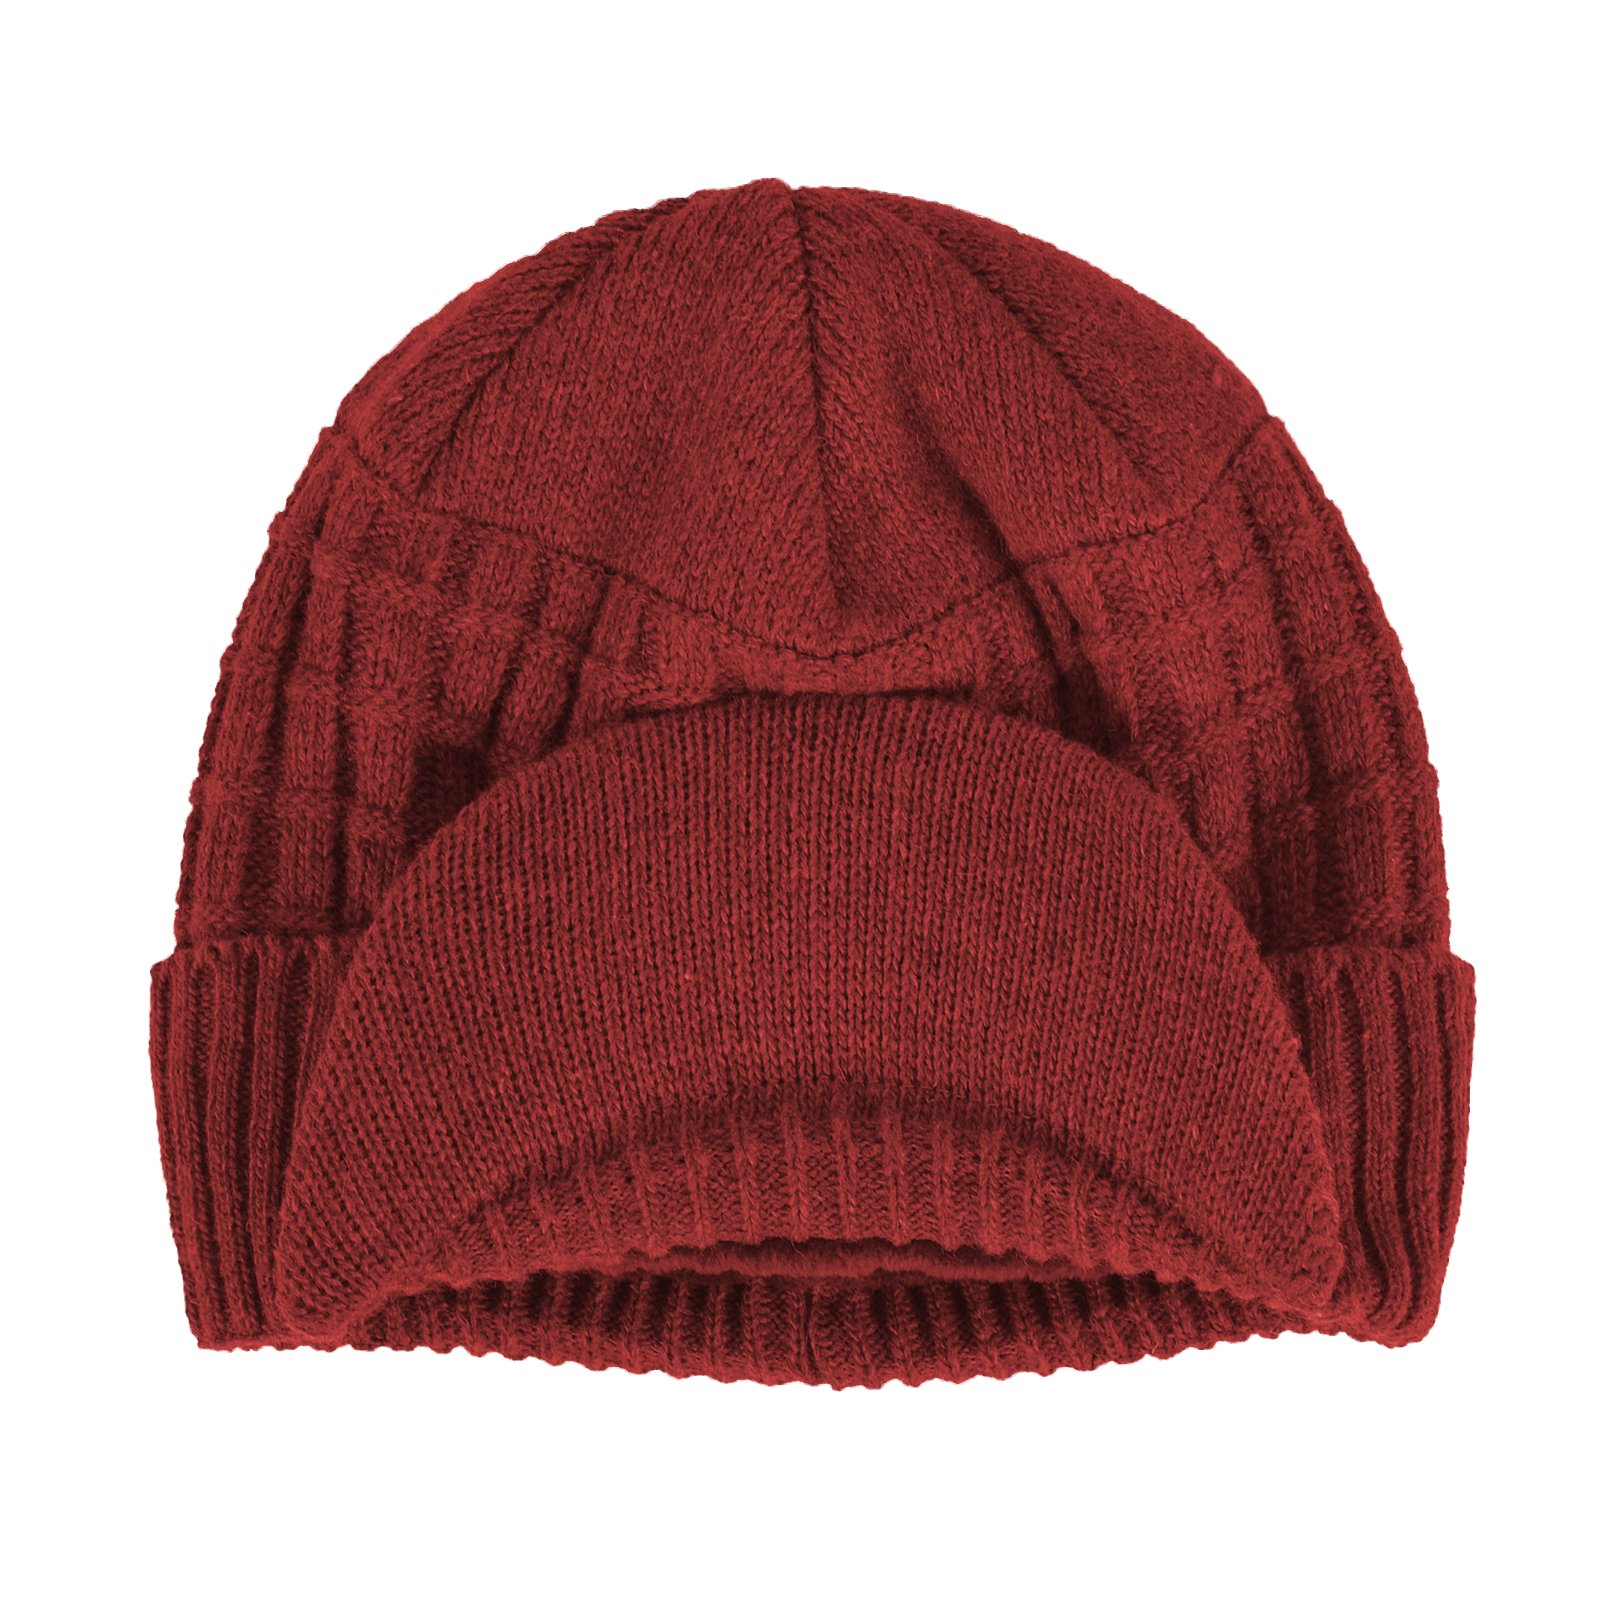 Janey/&Rubbins Sports Winter Outdoor Knit Visor Hat Billed Beanie with Brim Warm Fleece Lined for Men and Women